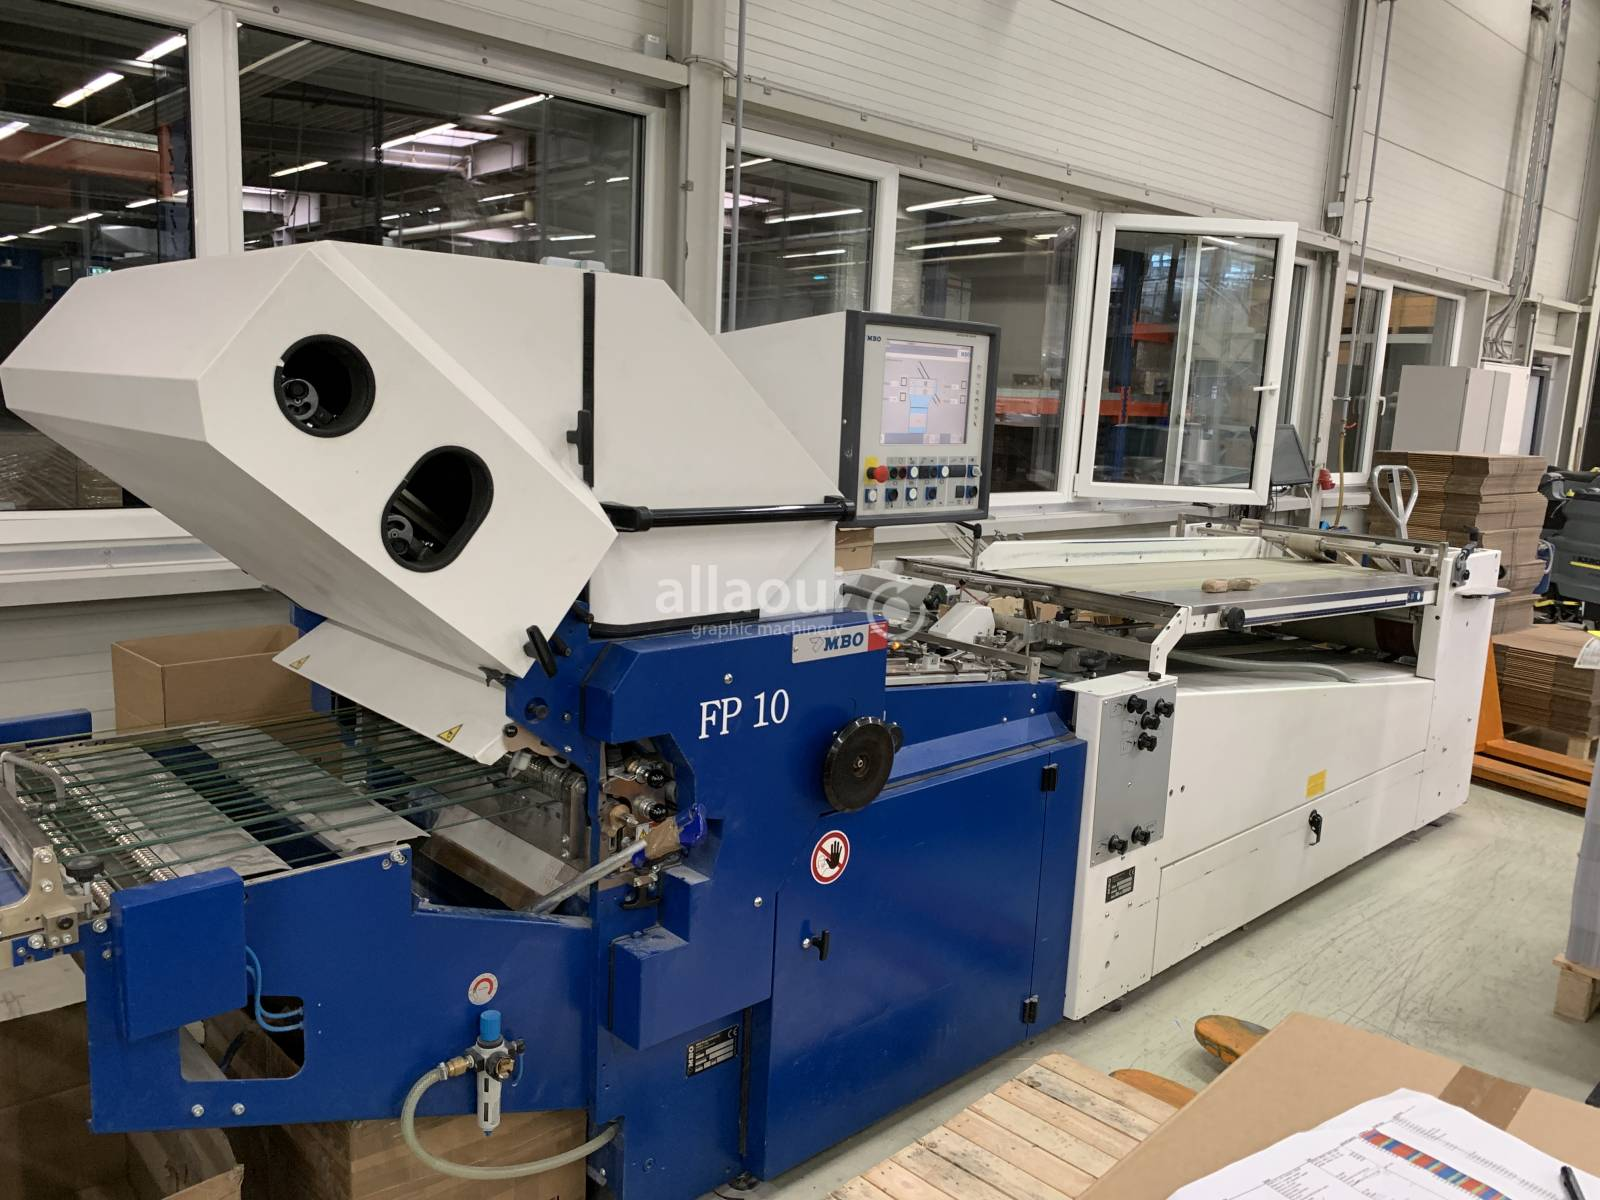 MBO T 700-4 + Palamides Delta 703 Picture 1